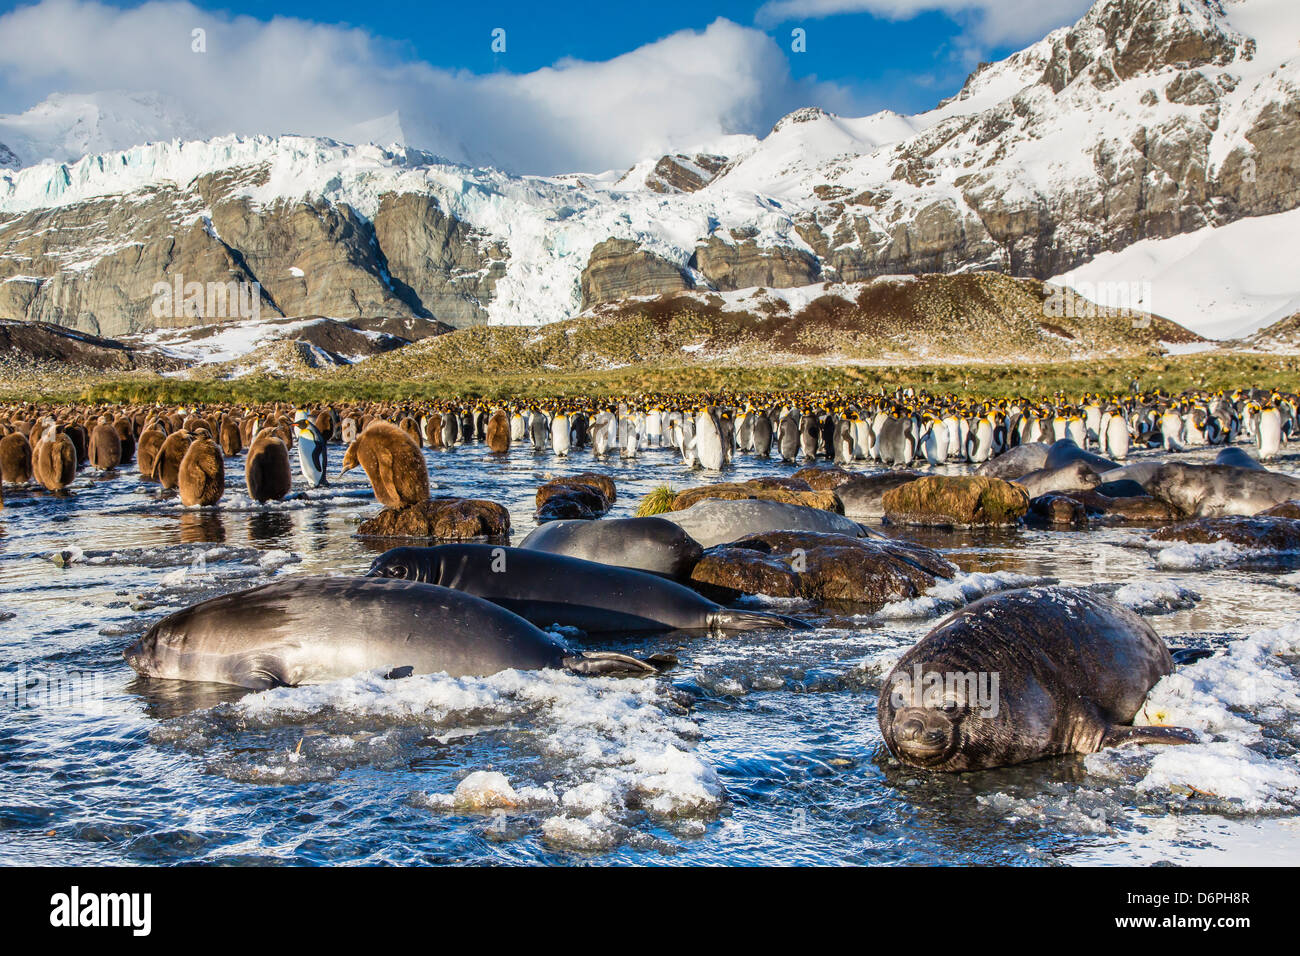 Southern elephant seal (Mirounga leonina) pups, Gold Harbour, South Georgia, South Atlantic Ocean, Polar Regions - Stock Image